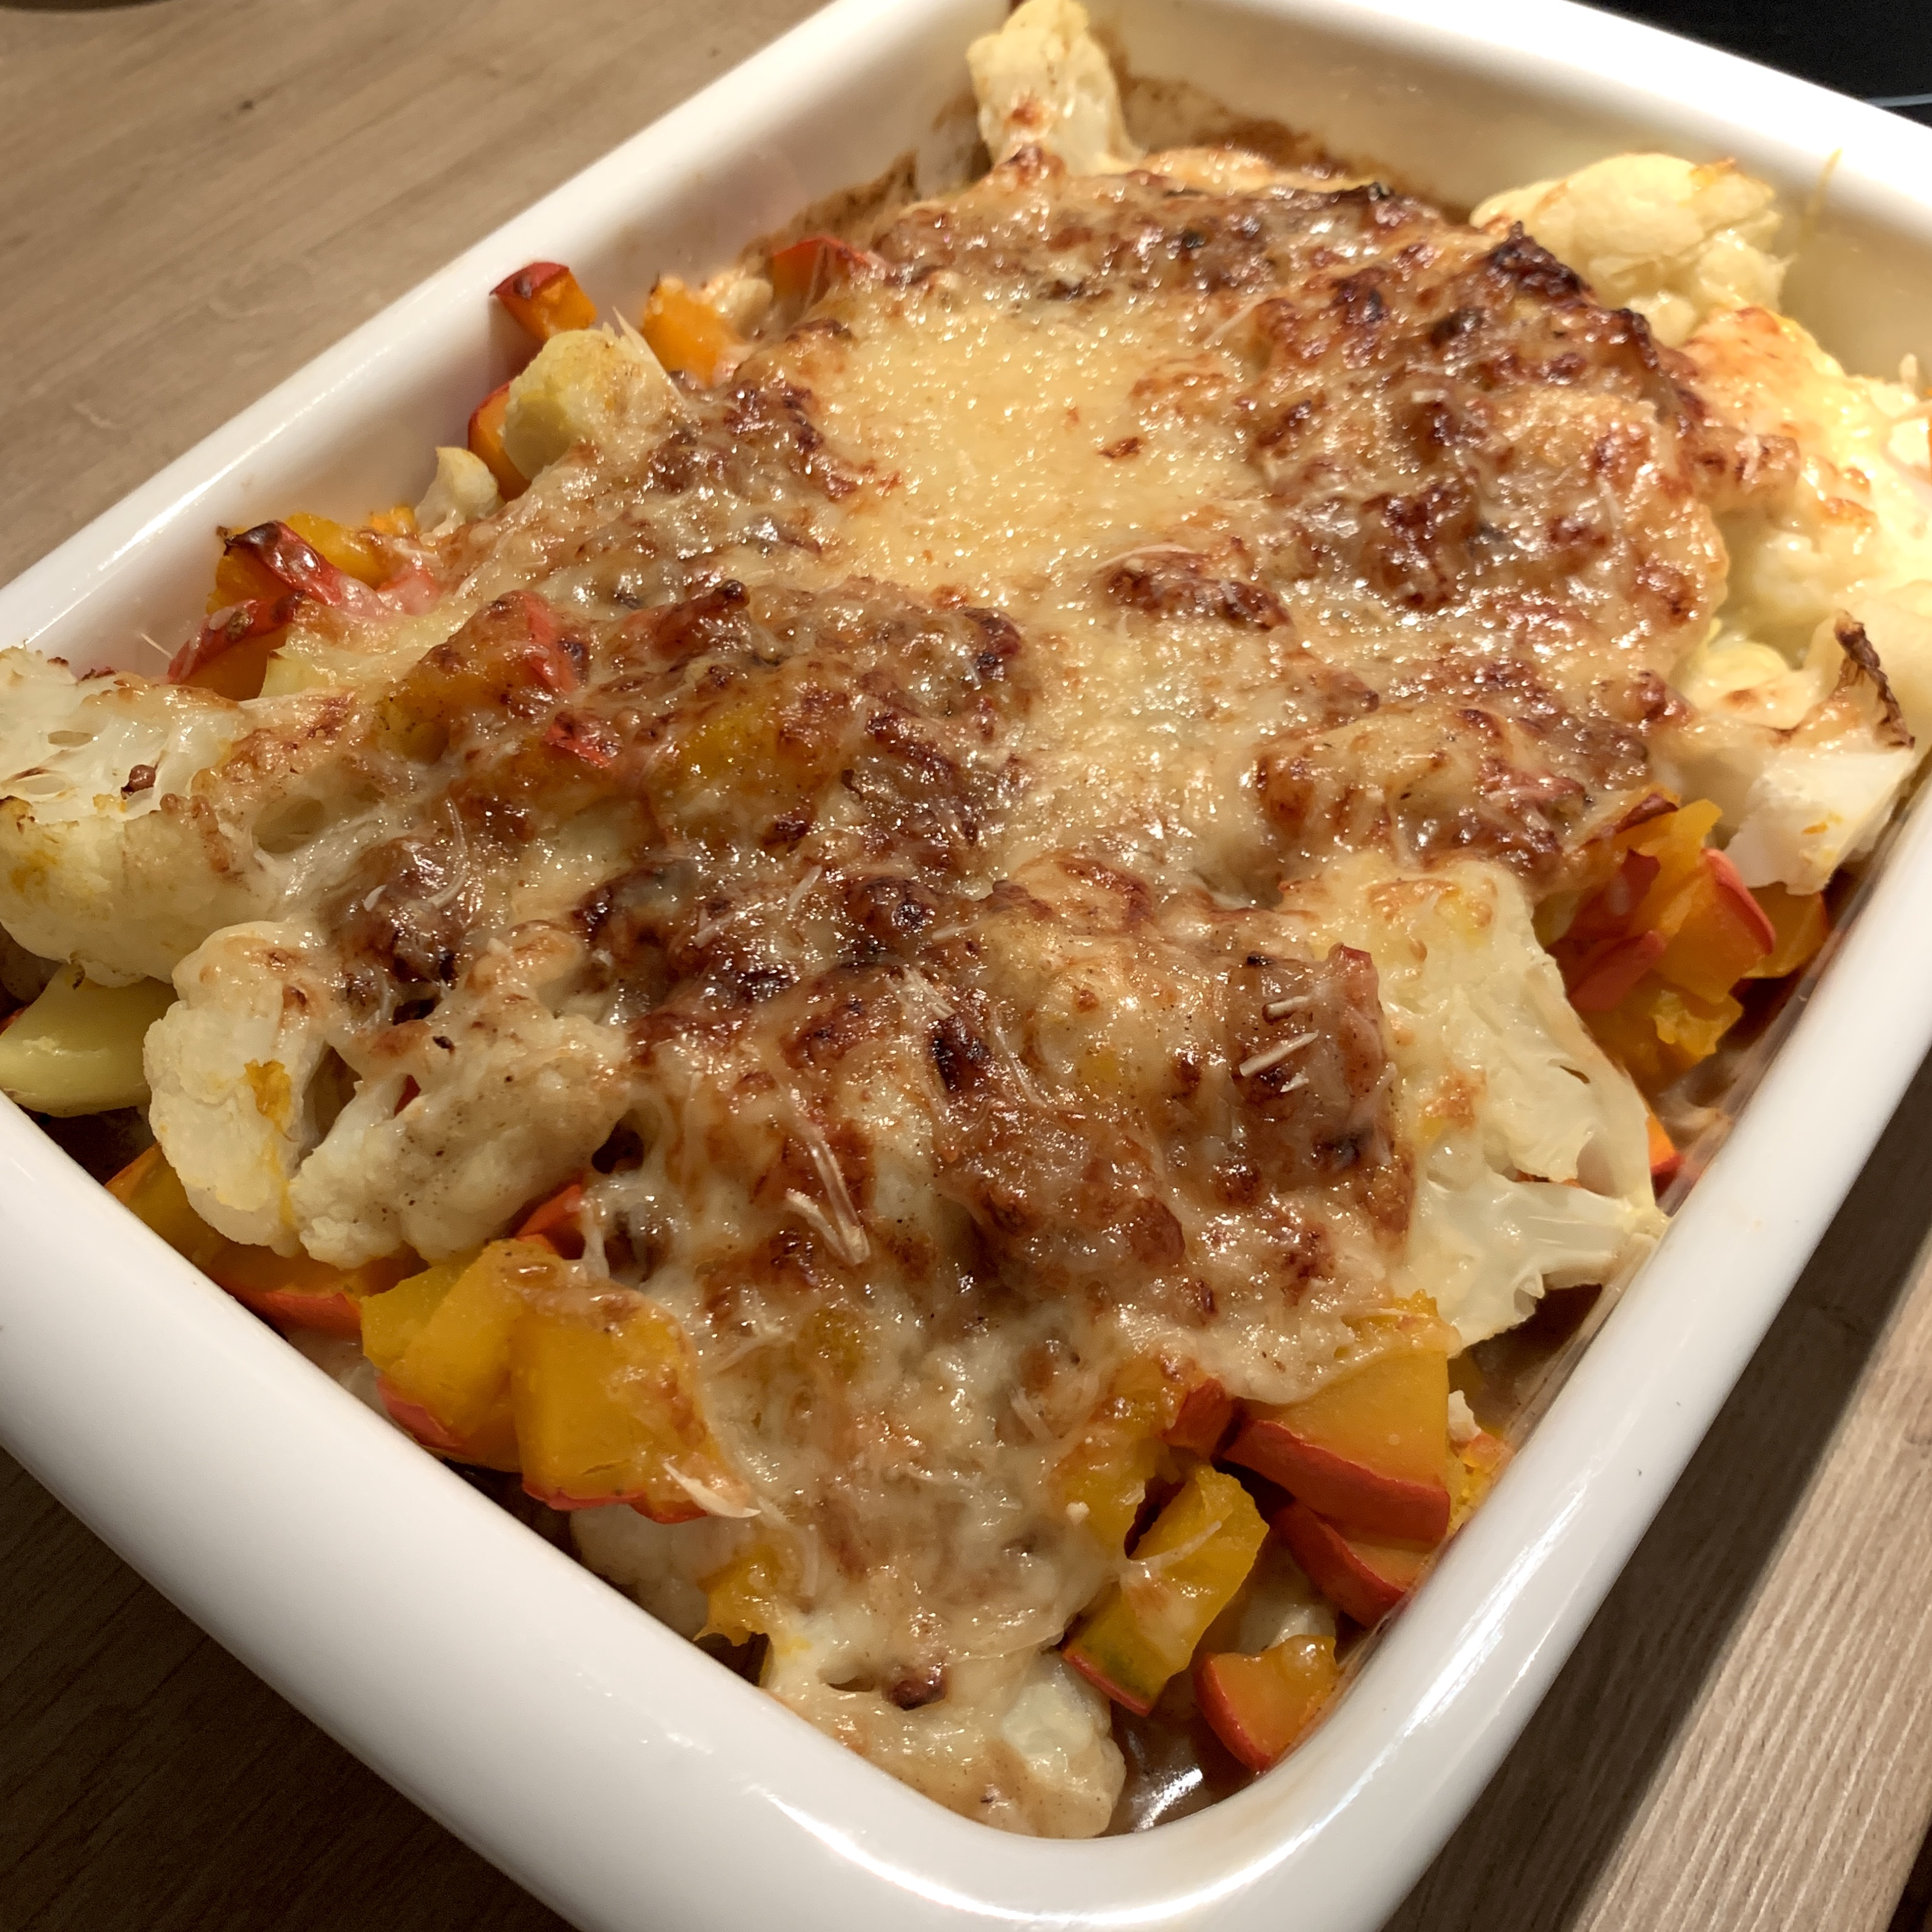 IMG 6570 - When the rain comes, the vegetables au gratin helps to revive your spirits!